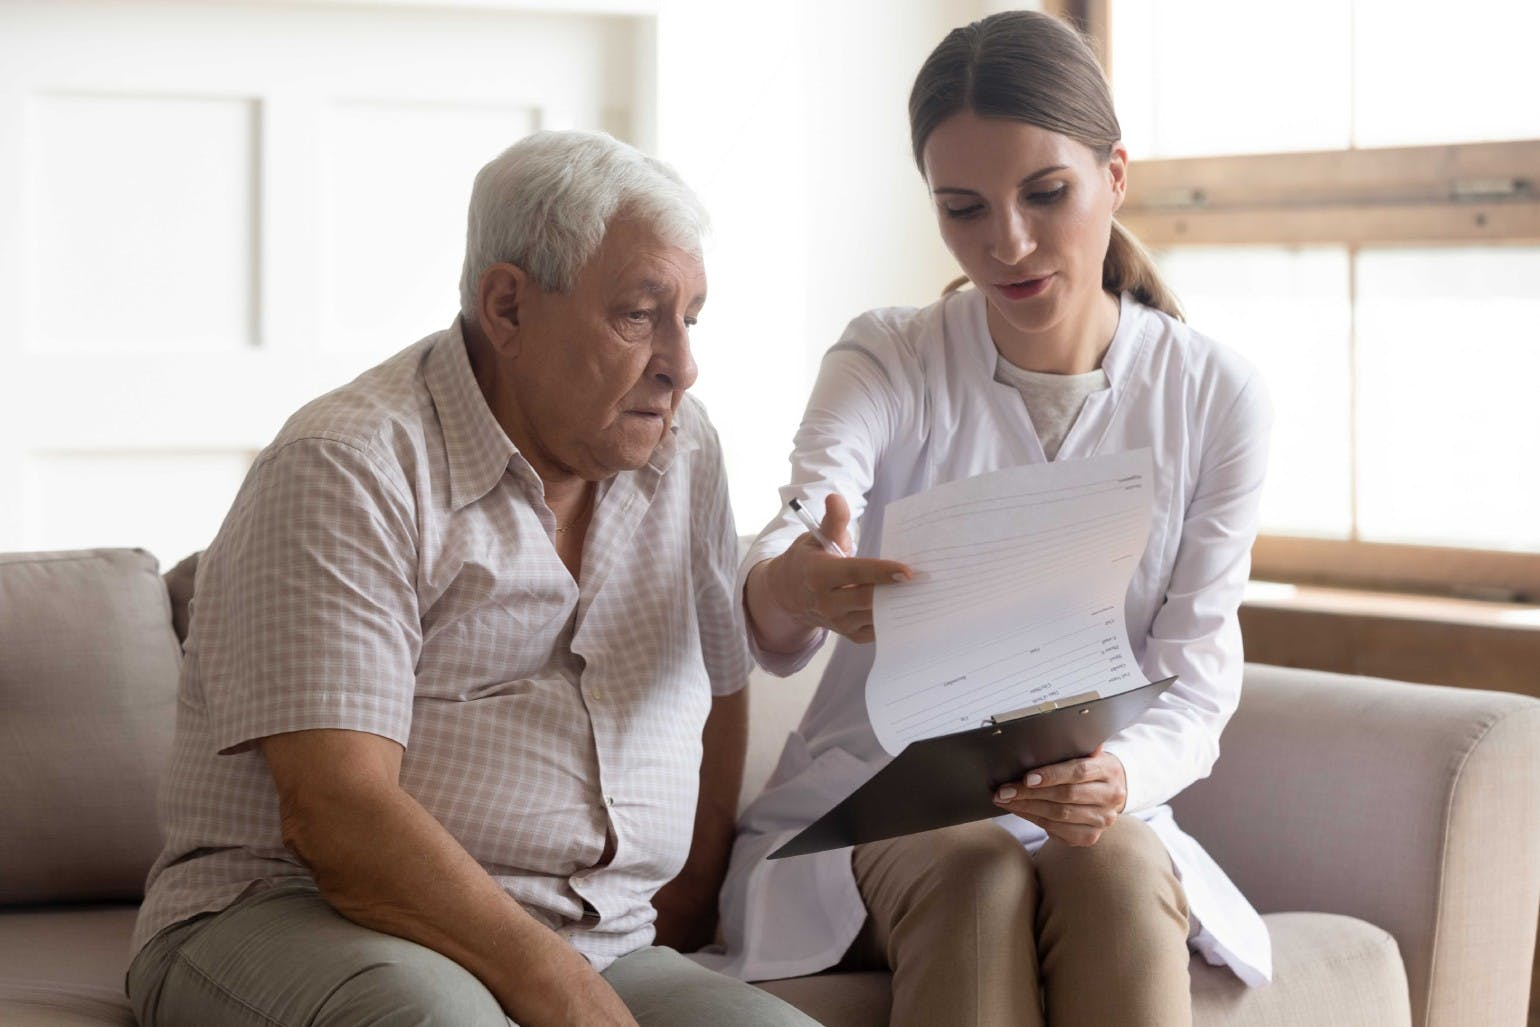 Female medical worker giving consultation to elderly patient